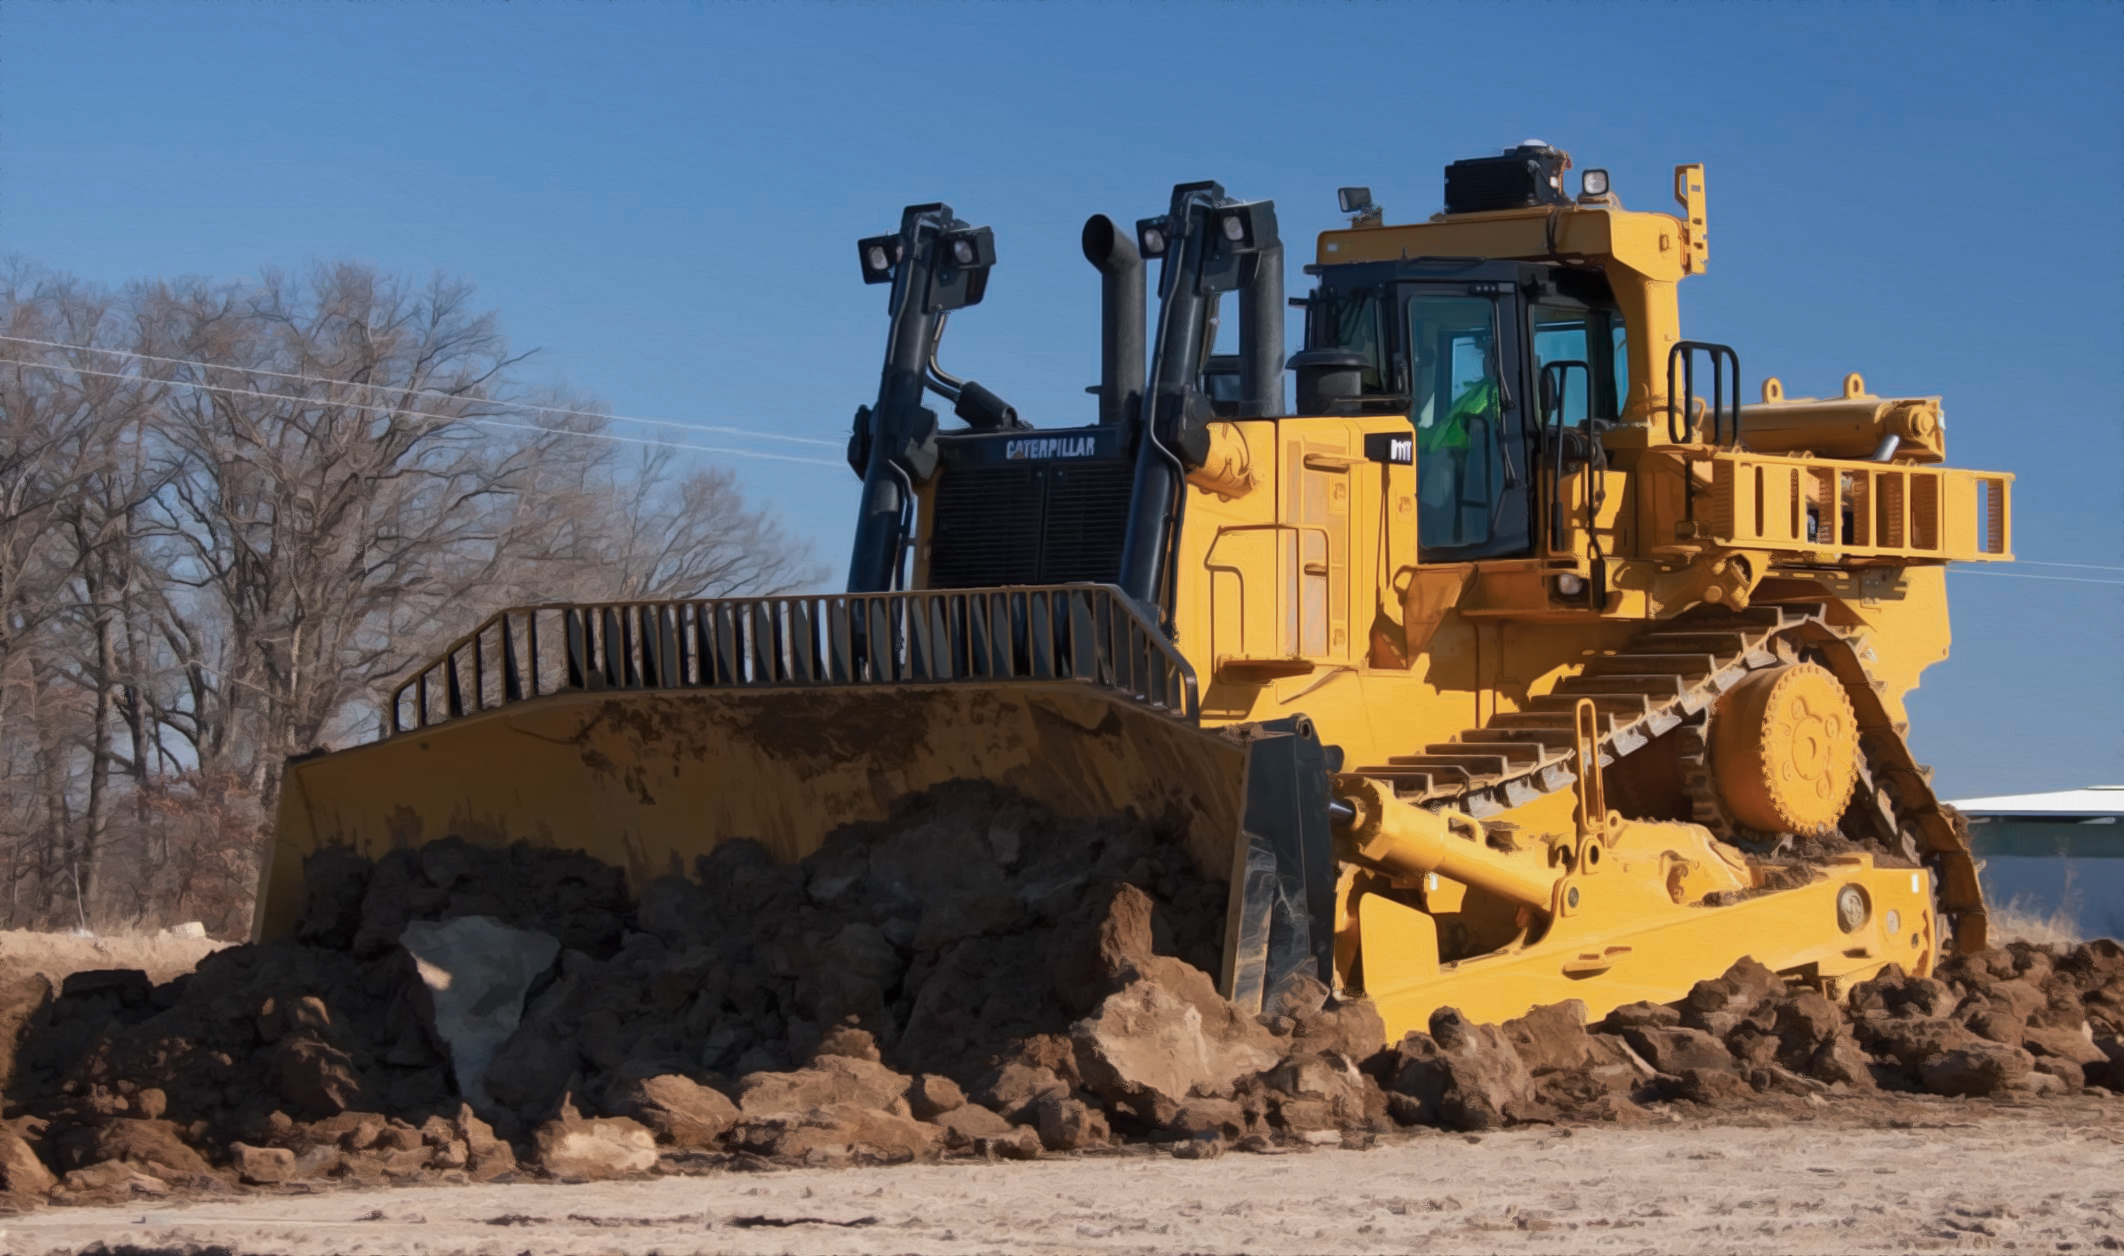 Dozer Data Reveals The World's Biggest Bulldozer